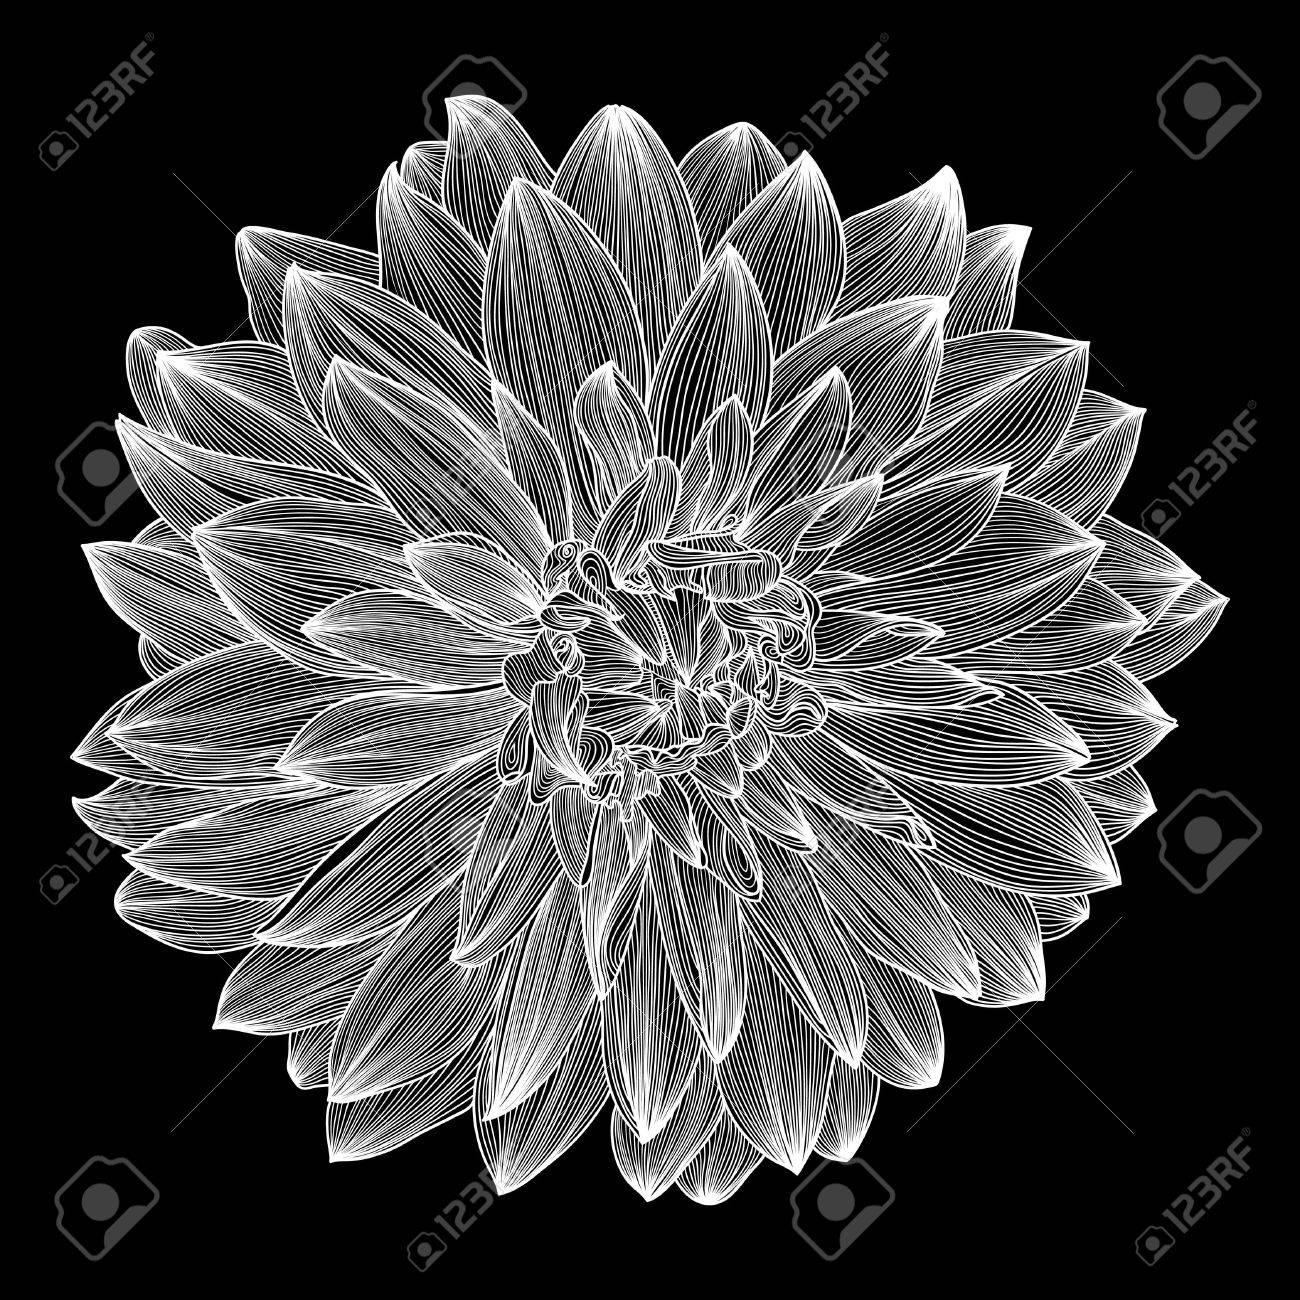 black and white drawing of dahlia flower. Element for your design, engraving style Stock Vector - 15555299